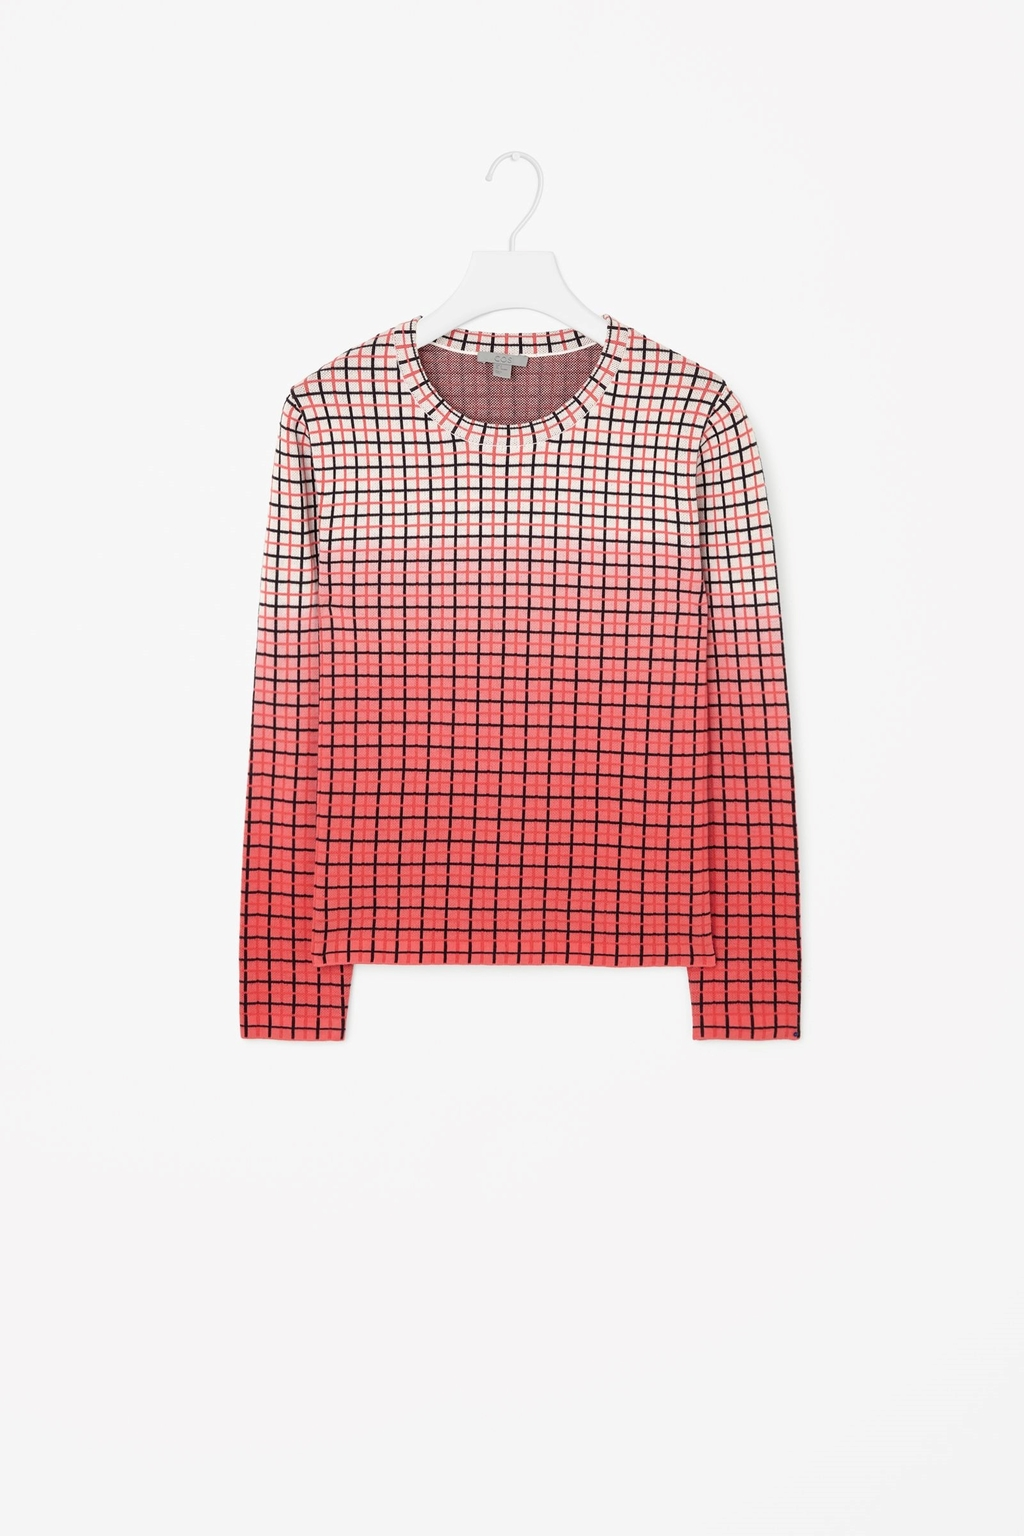 Fading Check Jumper - pattern: checked/gingham; style: standard; predominant colour: coral; secondary colour: nude; occasions: casual; length: standard; fibres: cotton - 100%; fit: standard fit; neckline: crew; sleeve length: long sleeve; sleeve style: standard; texture group: knits/crochet; pattern type: fabric; pattern size: standard; multicoloured: multicoloured; season: a/w 2015; wardrobe: highlight